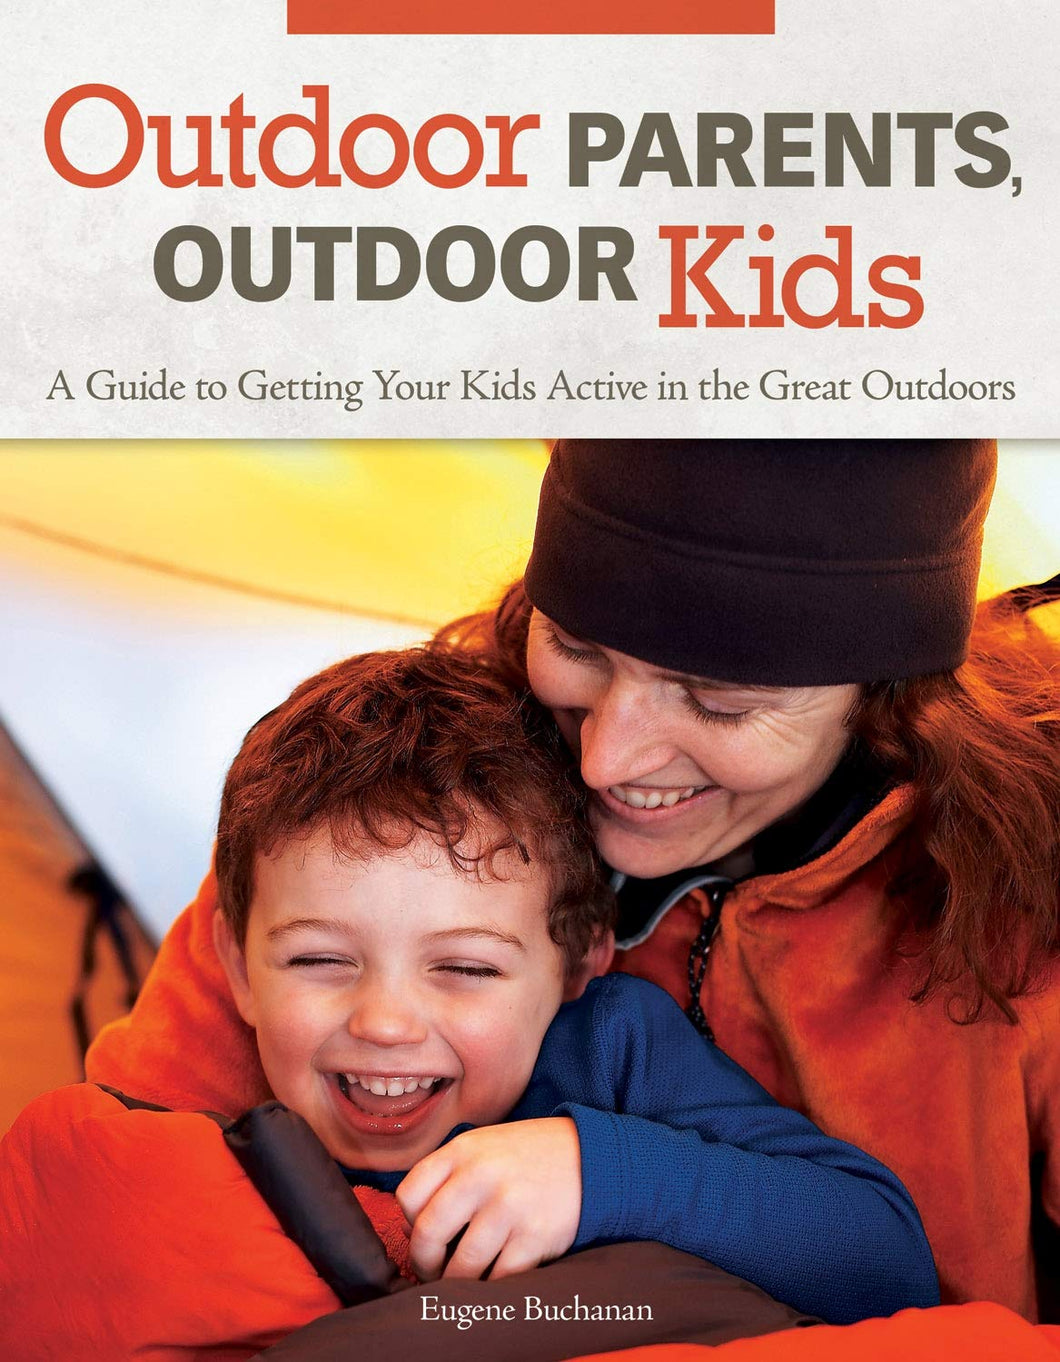 Outdoor Parents, Outdoor Kids